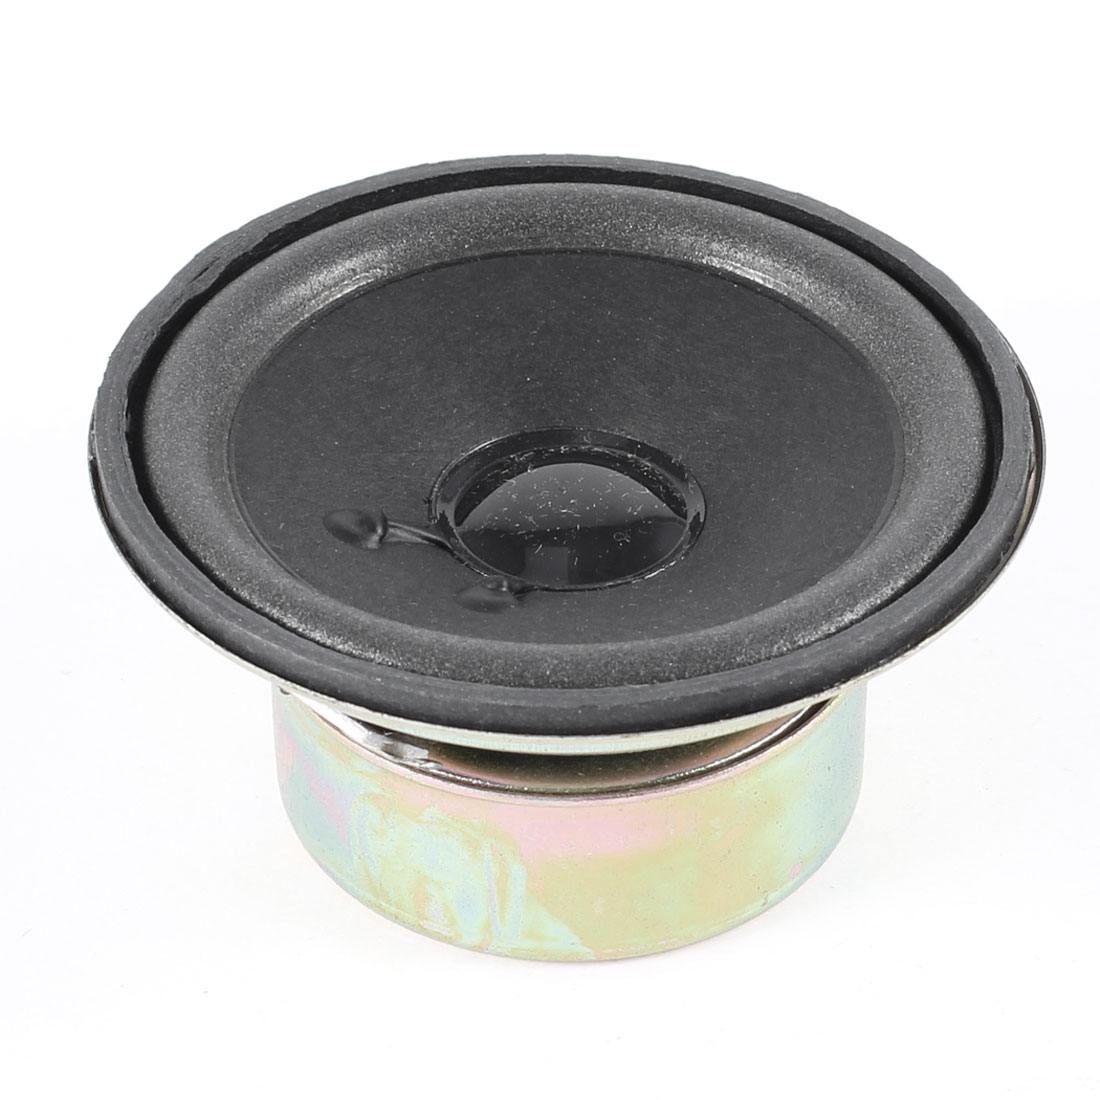 77mm OD Internal Magnet Toys Multimedia Speaker Tweeter Horn 4 Ohm 10W